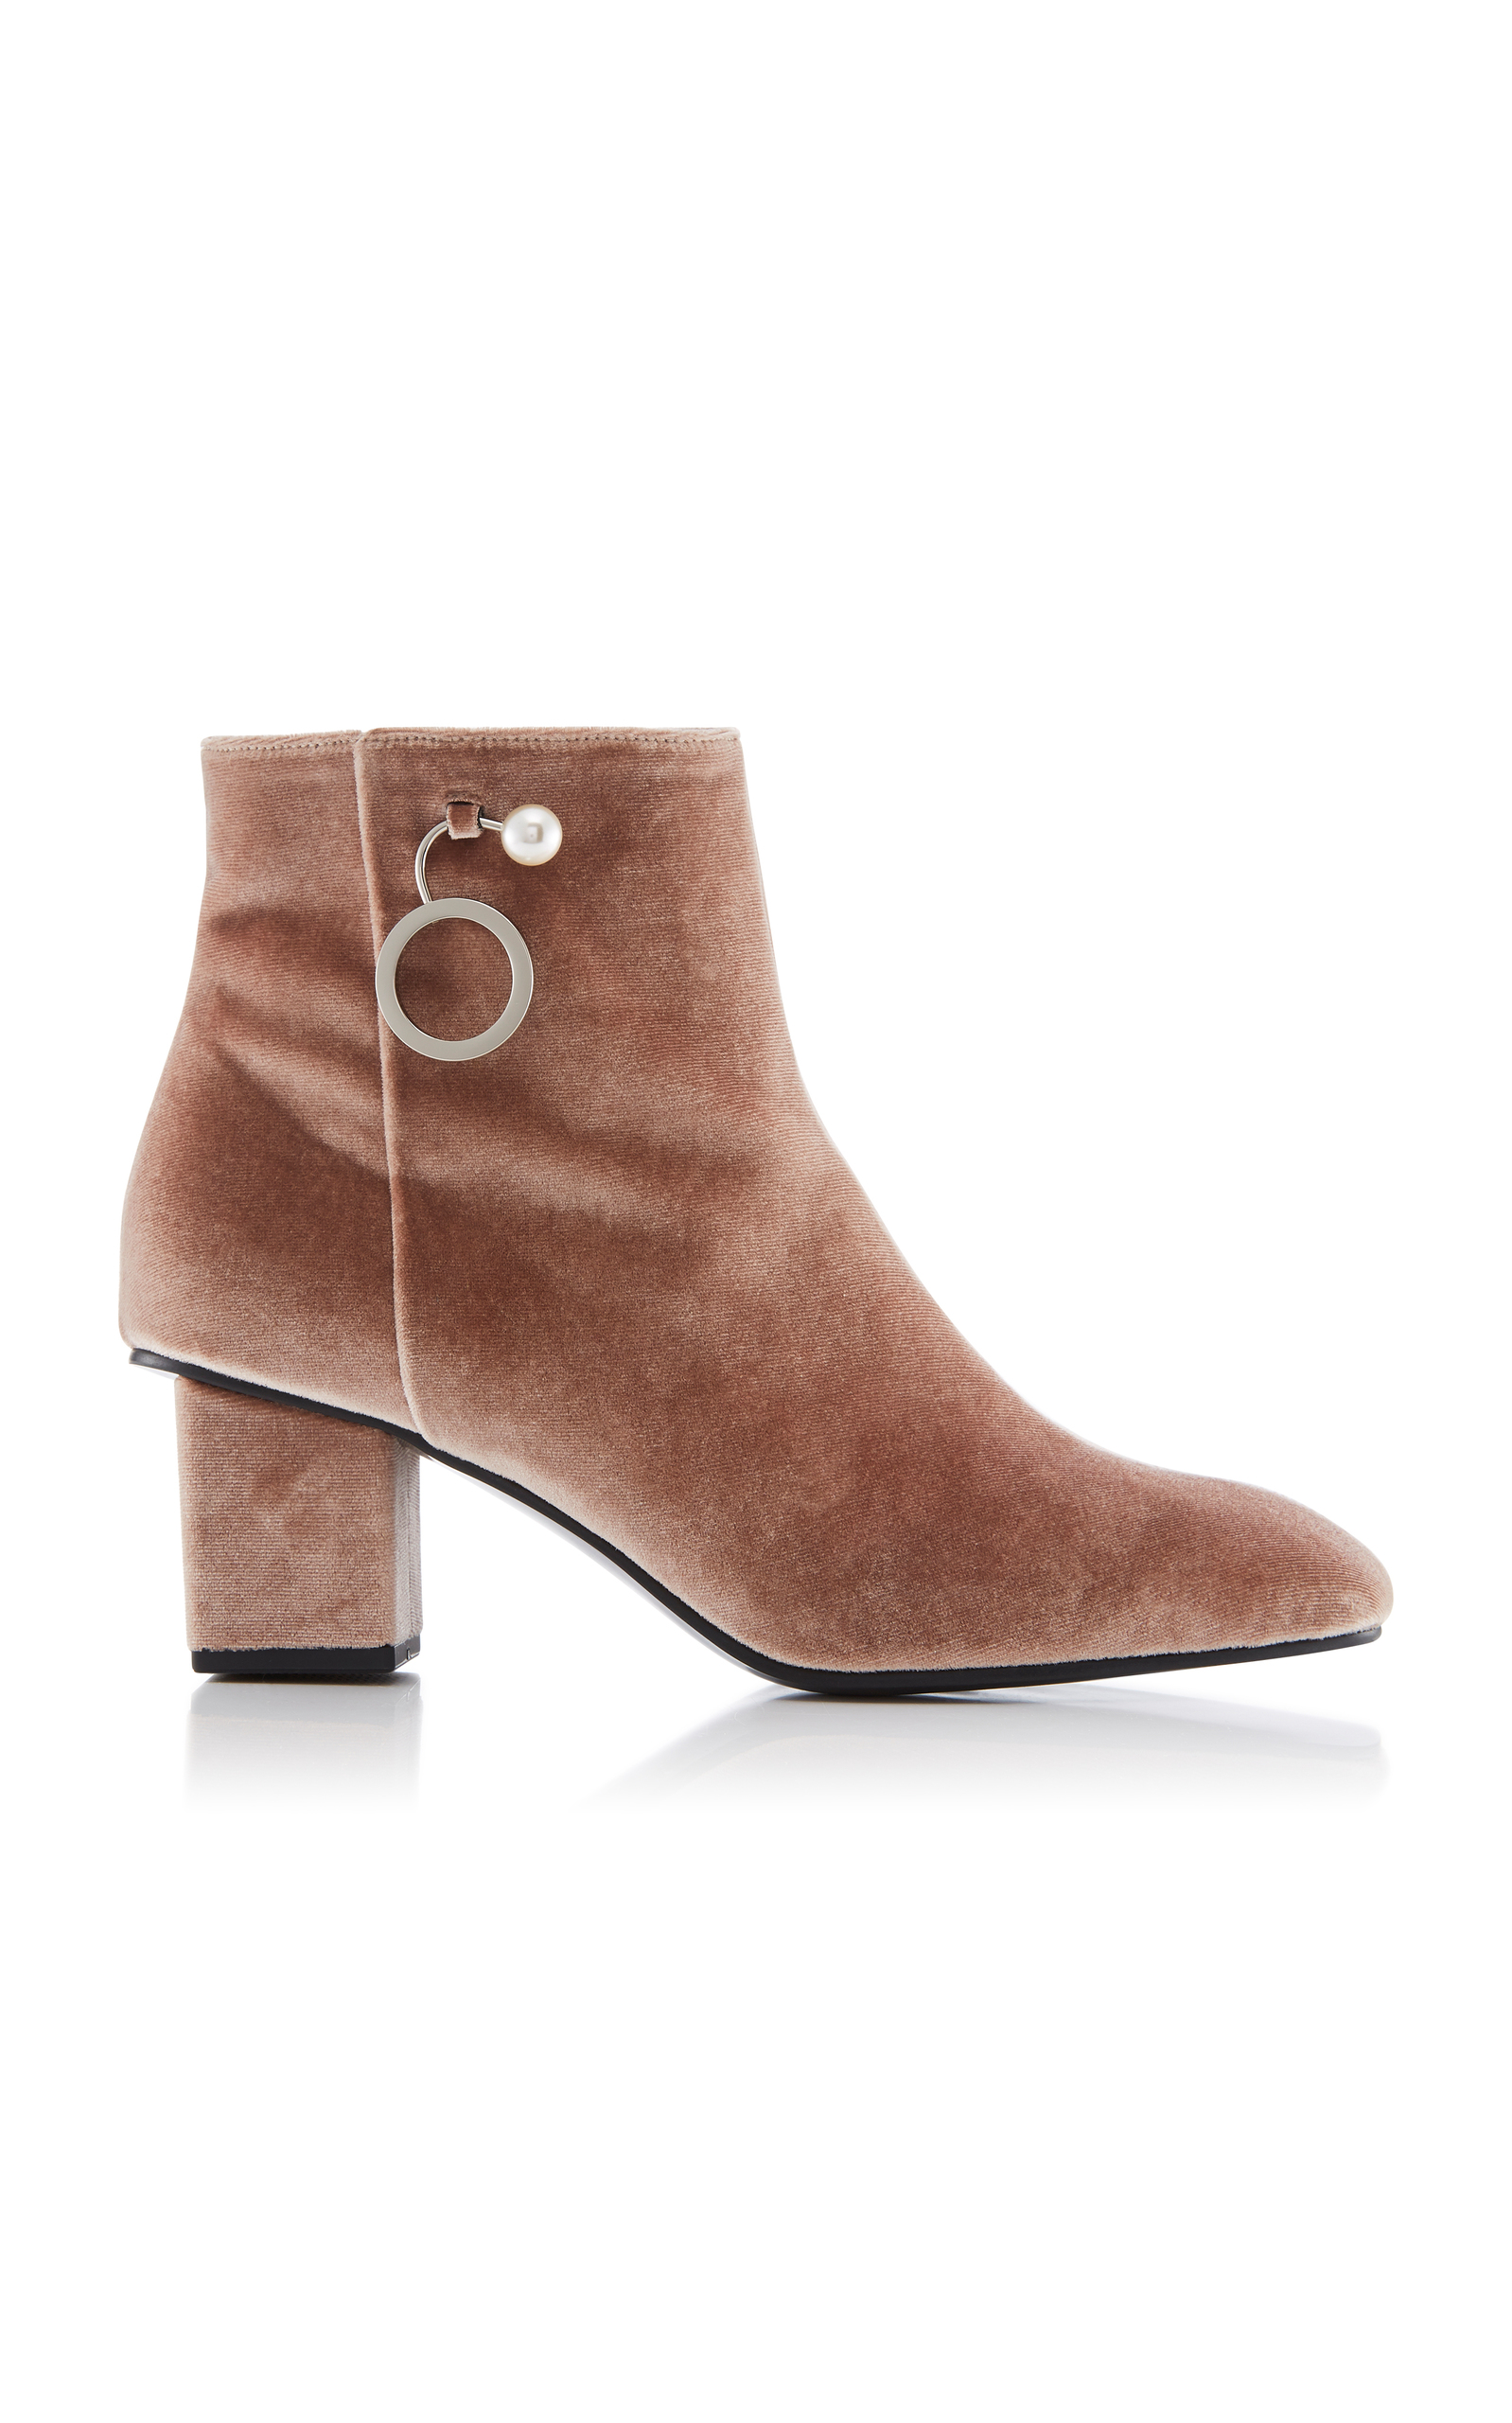 YUUL YIE M'O Exclusive Velvet Ankle Boots QA7mlvL